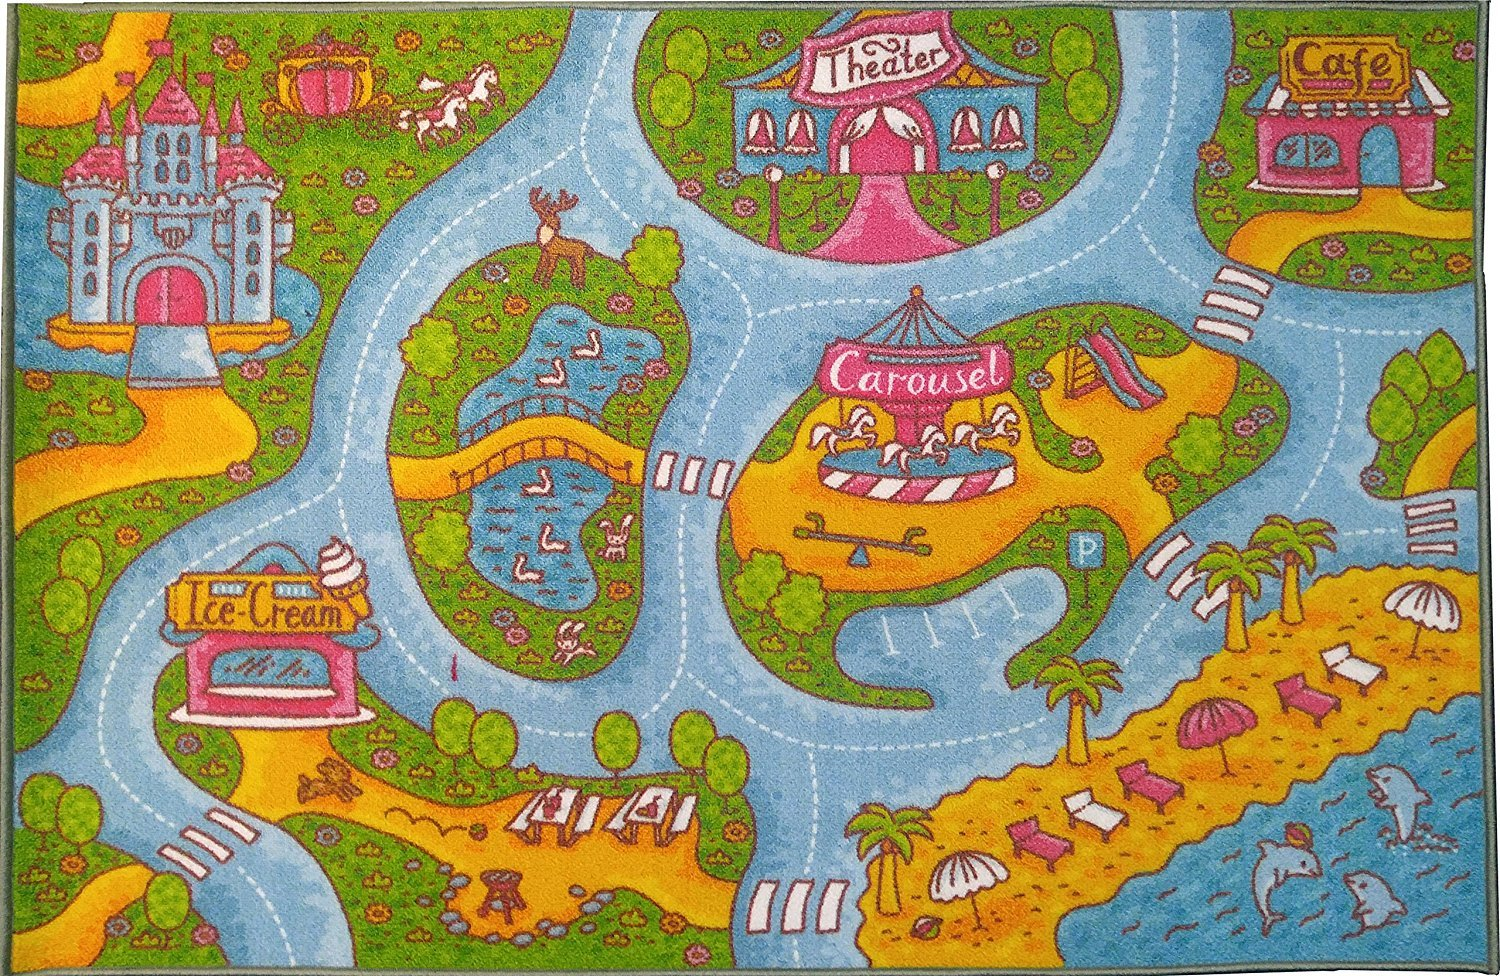 KC CUBS Playtime Collection Girls Road Map Educational Learning & Game Area Rug Carpet for Kids and Children Bedrooms and Playroom (3' 3'' x 4' 7'')